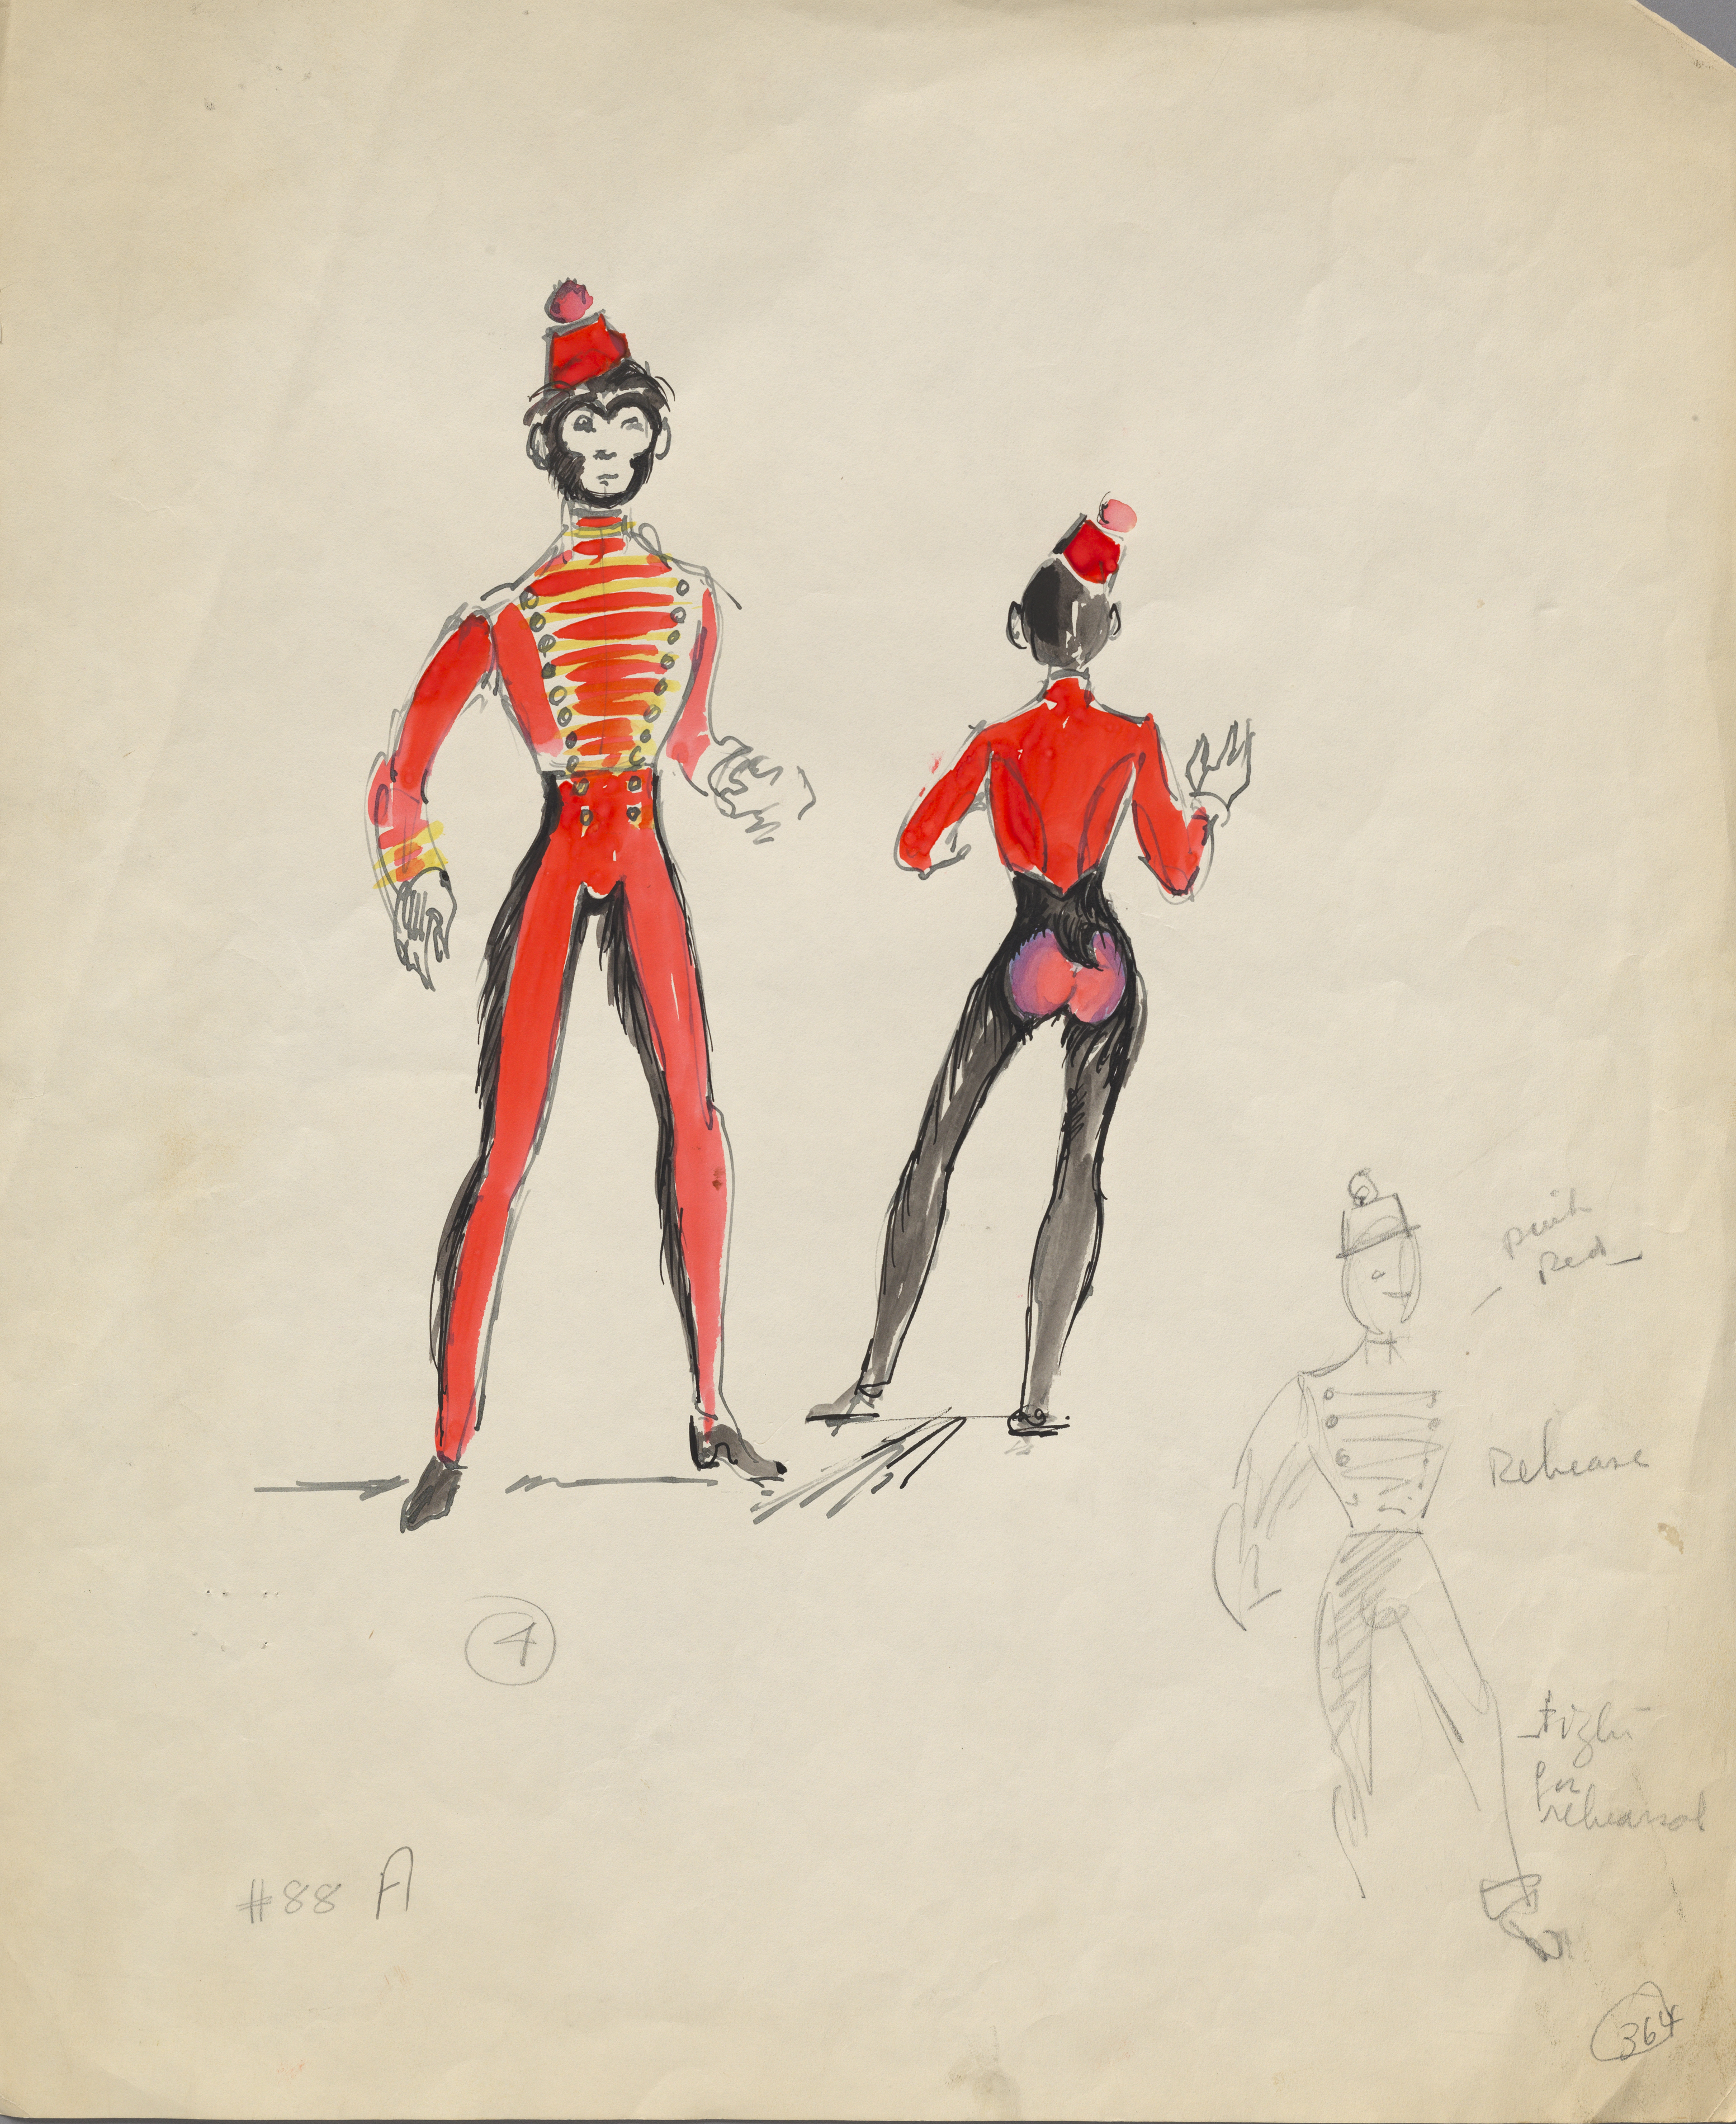 Hand-drawn sketch. Two costume designs done in pink, red, yellow, black, grey, and white for a monkey dressed in a bellhop's uniform.